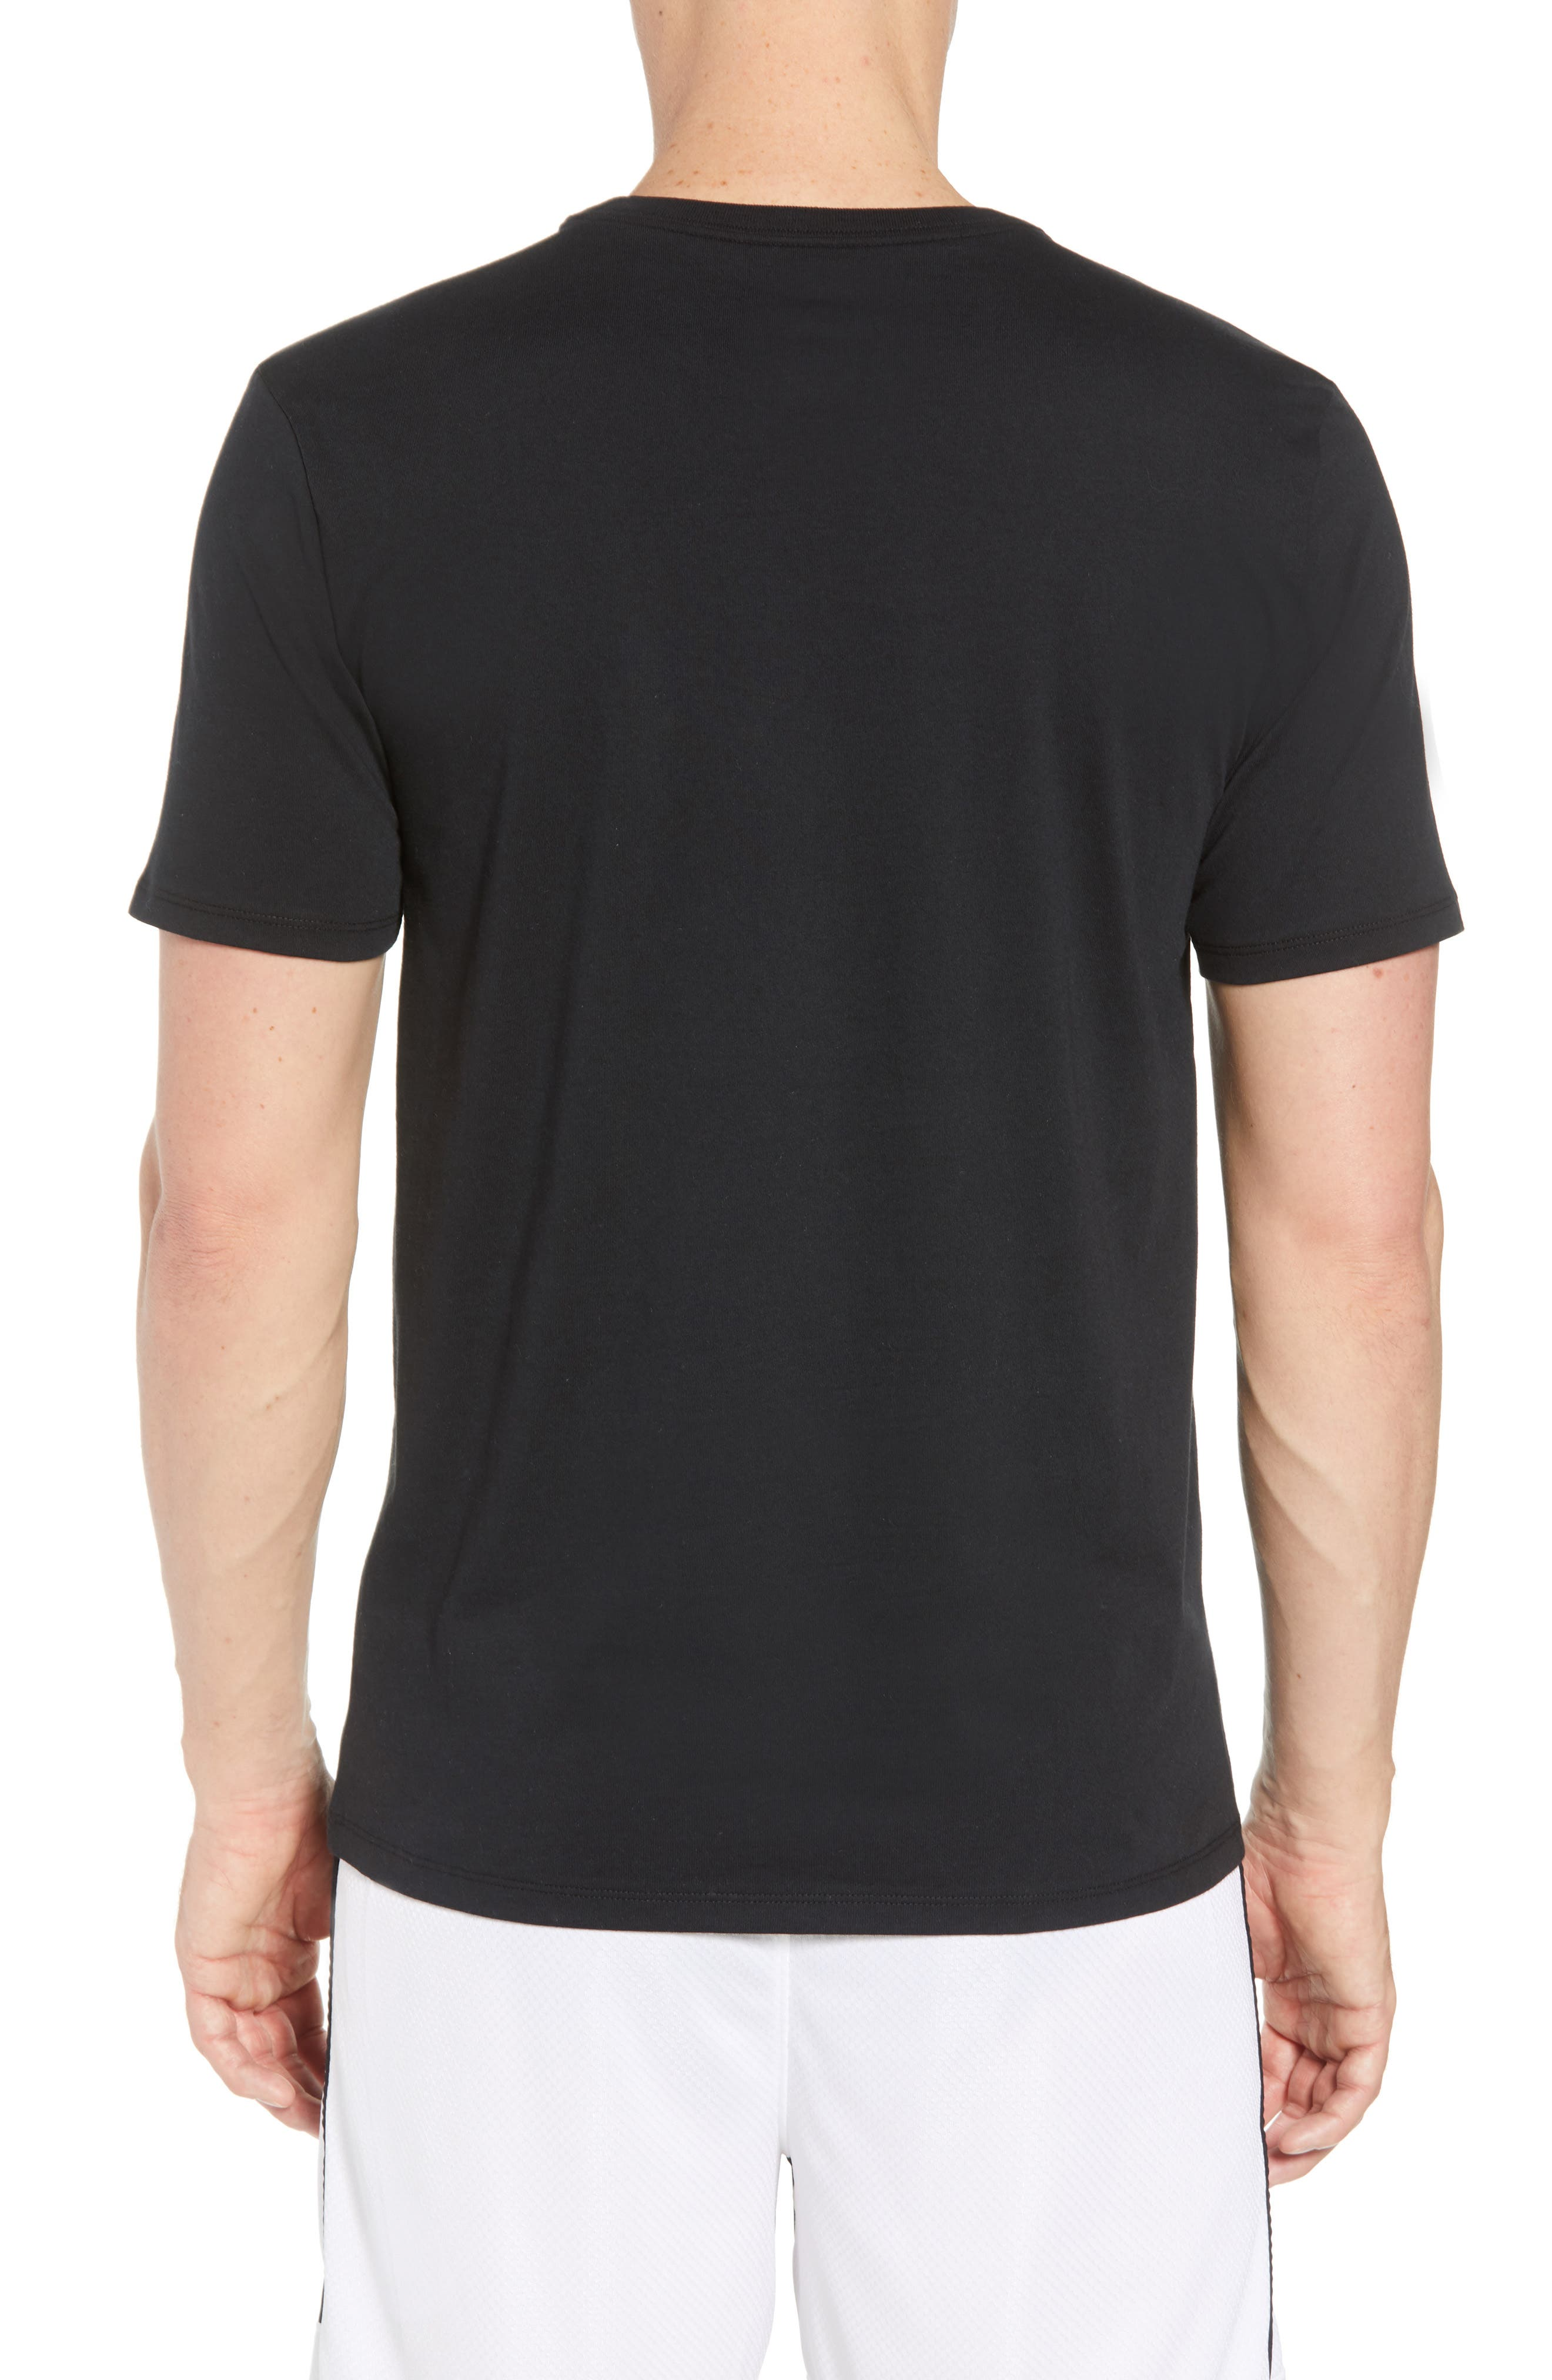 Sports Illustrated Graphic T-Shirt,                             Alternate thumbnail 3, color,